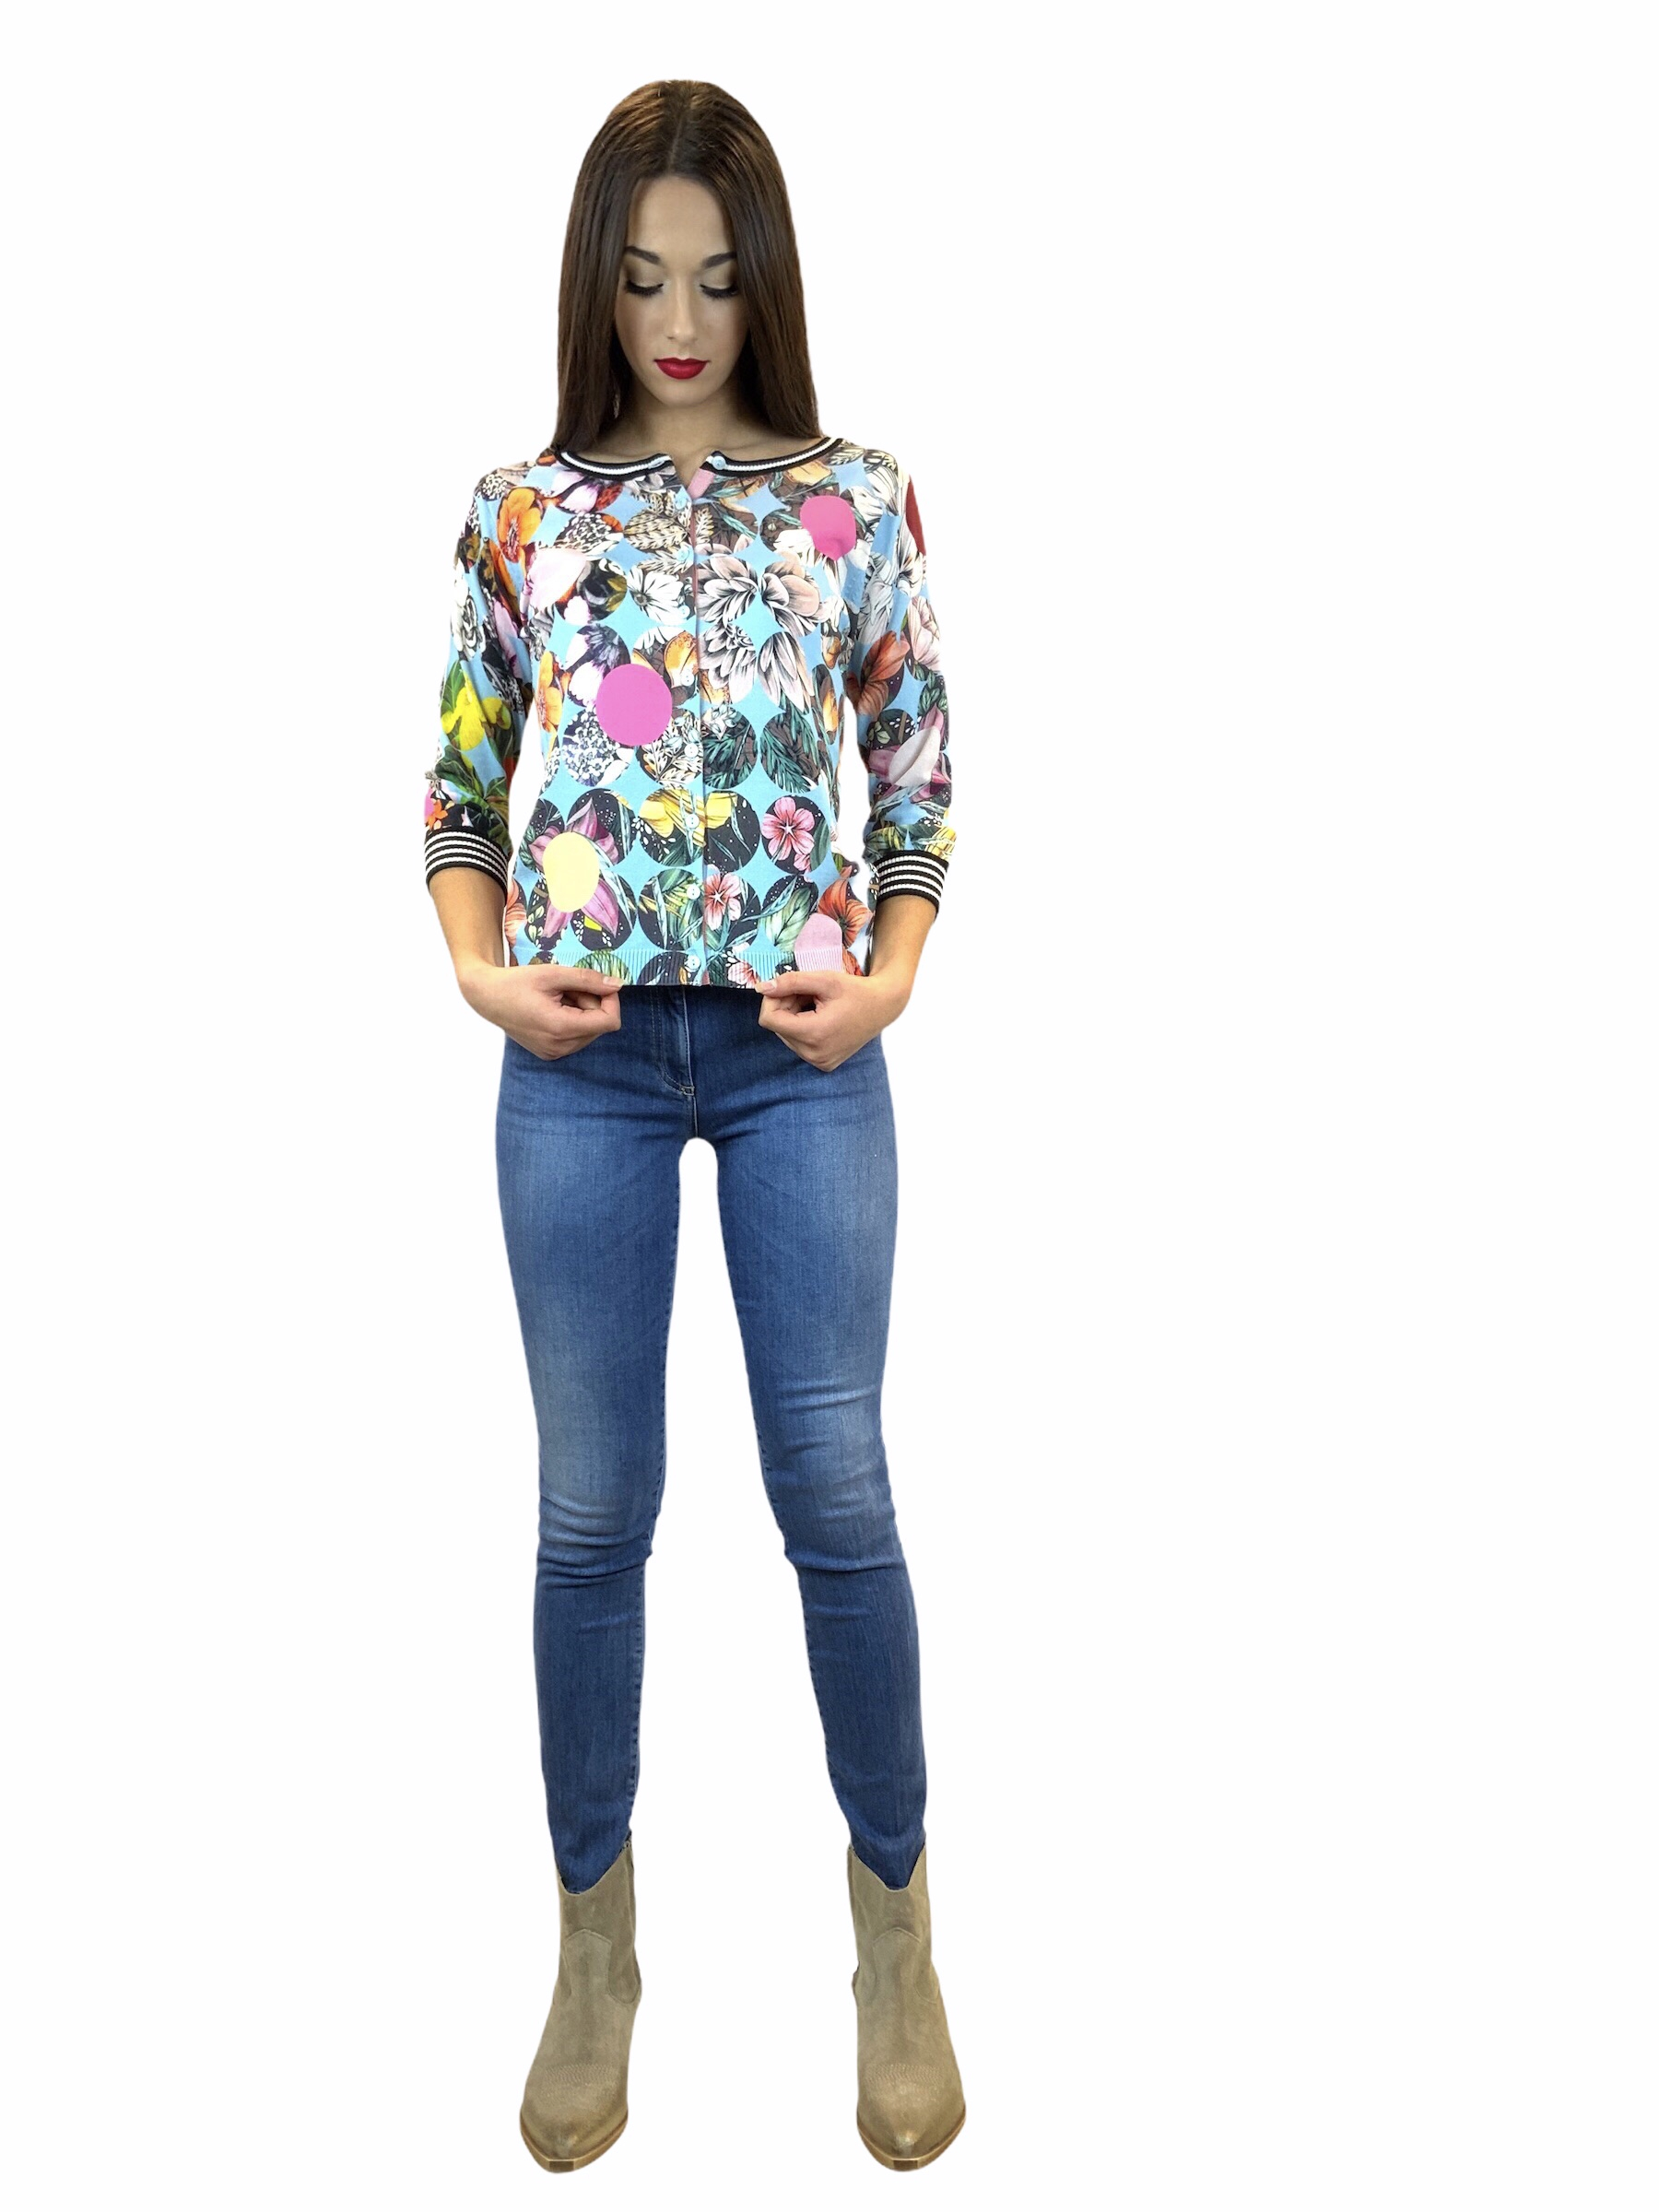 JEI'S CARDIGAN STAMPA TROPICALE